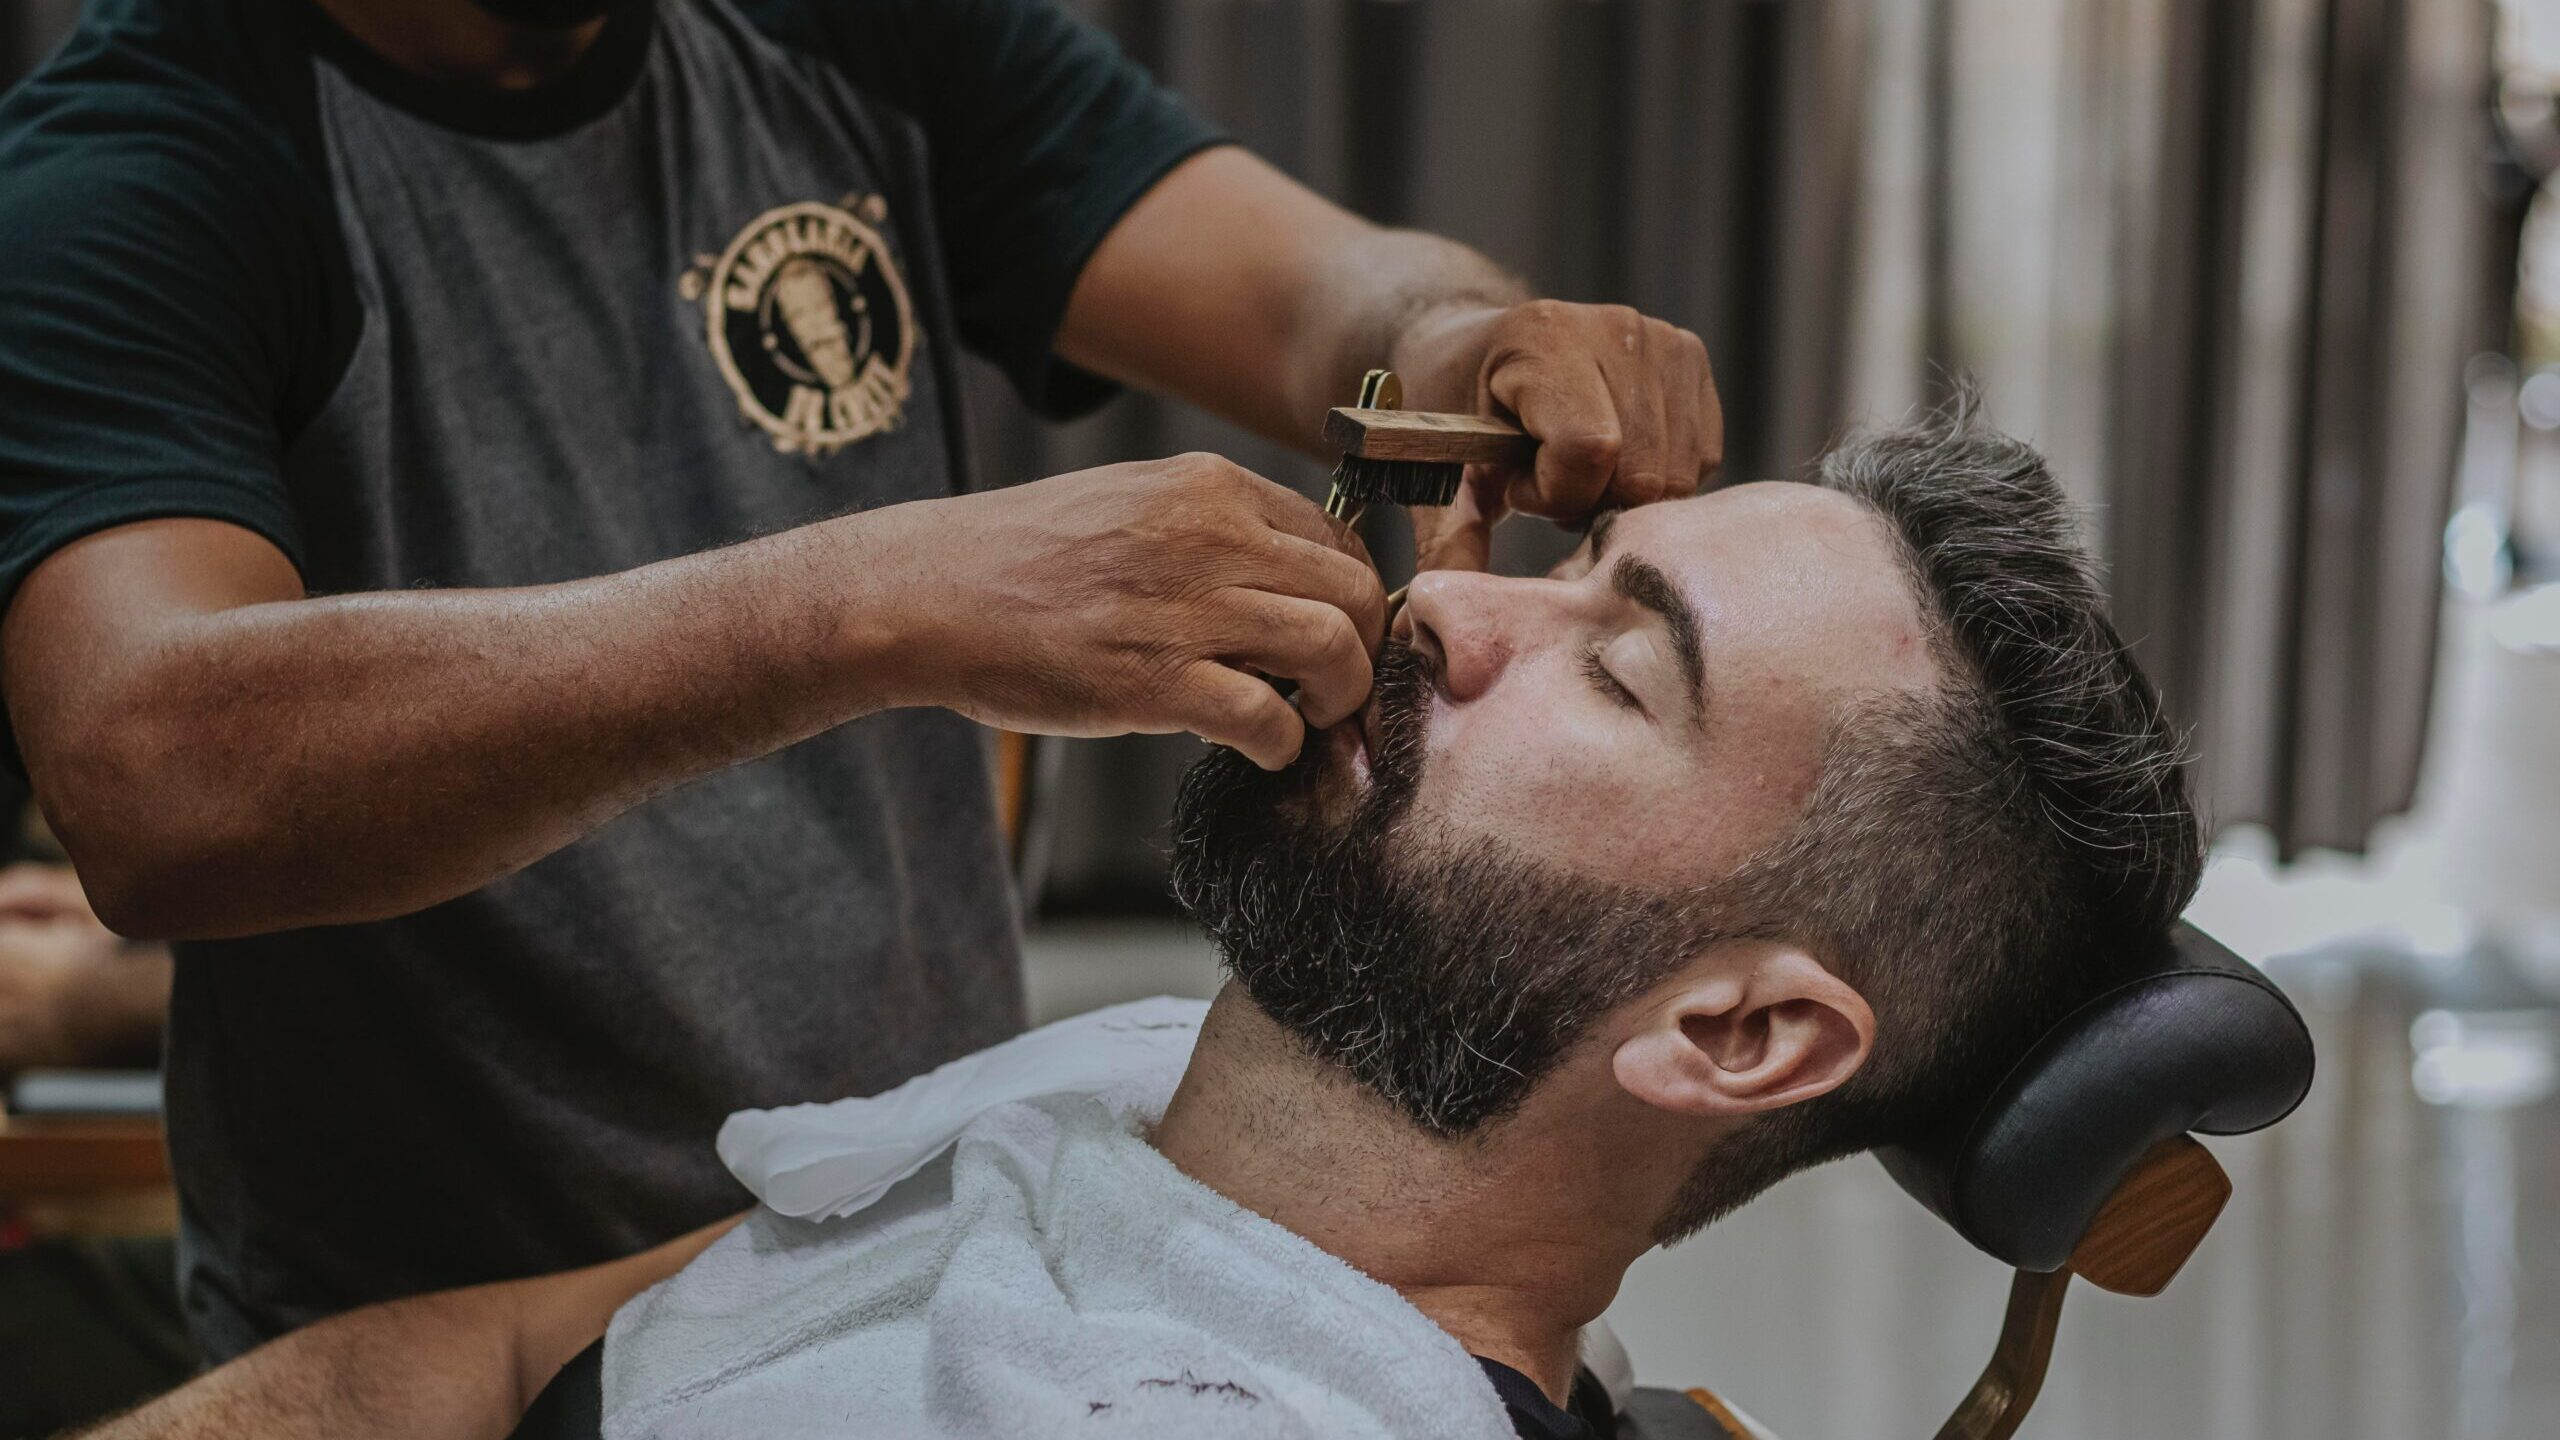 Haircuts On Demand: The Life Of Barbers During The Pandemic